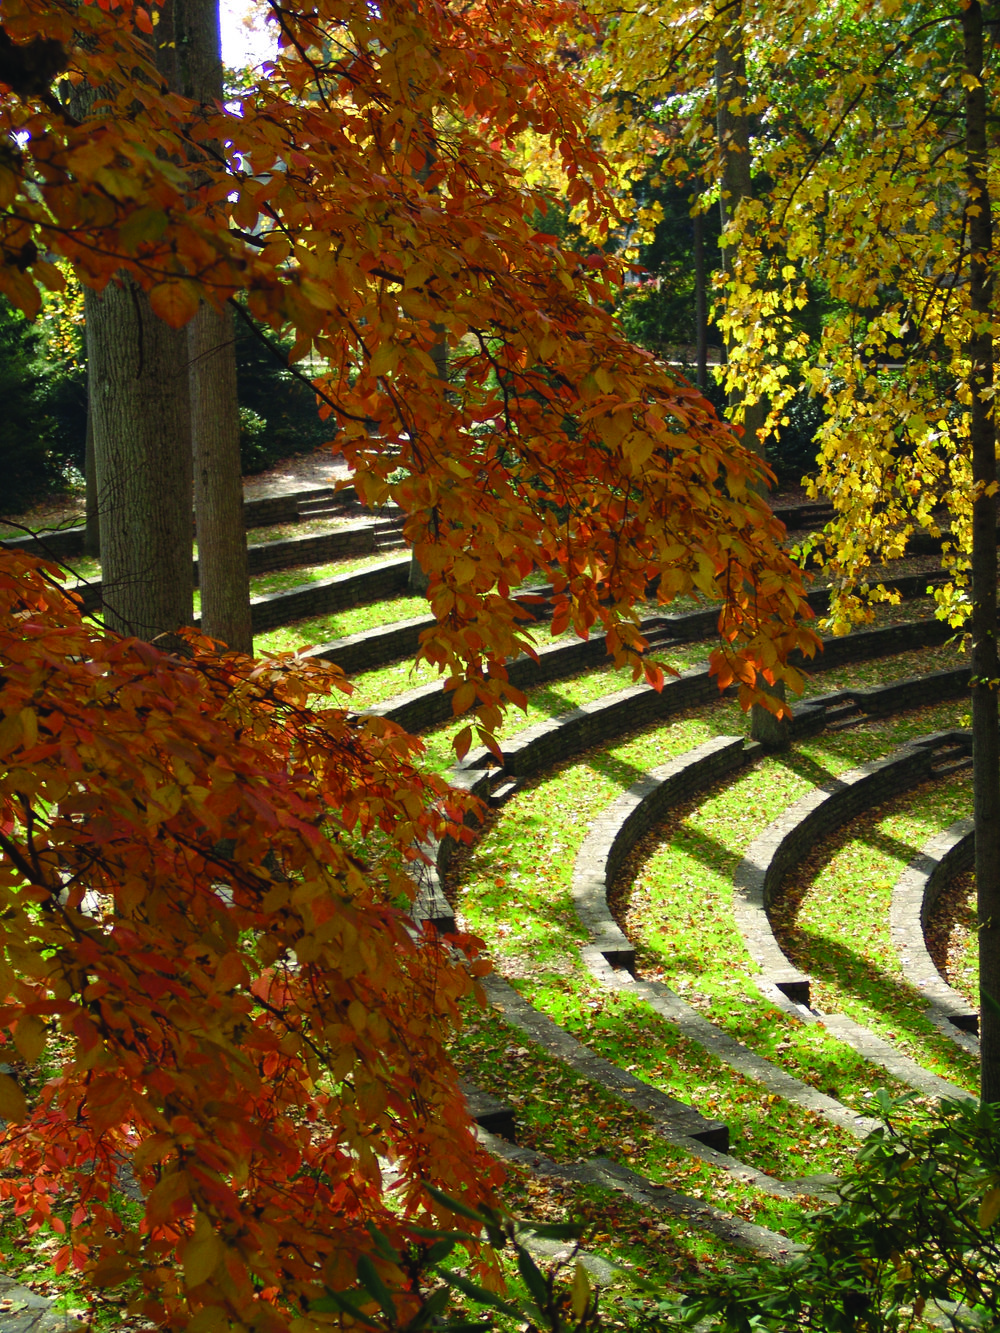 Sister Gardens of Delaware County - View Itinerary